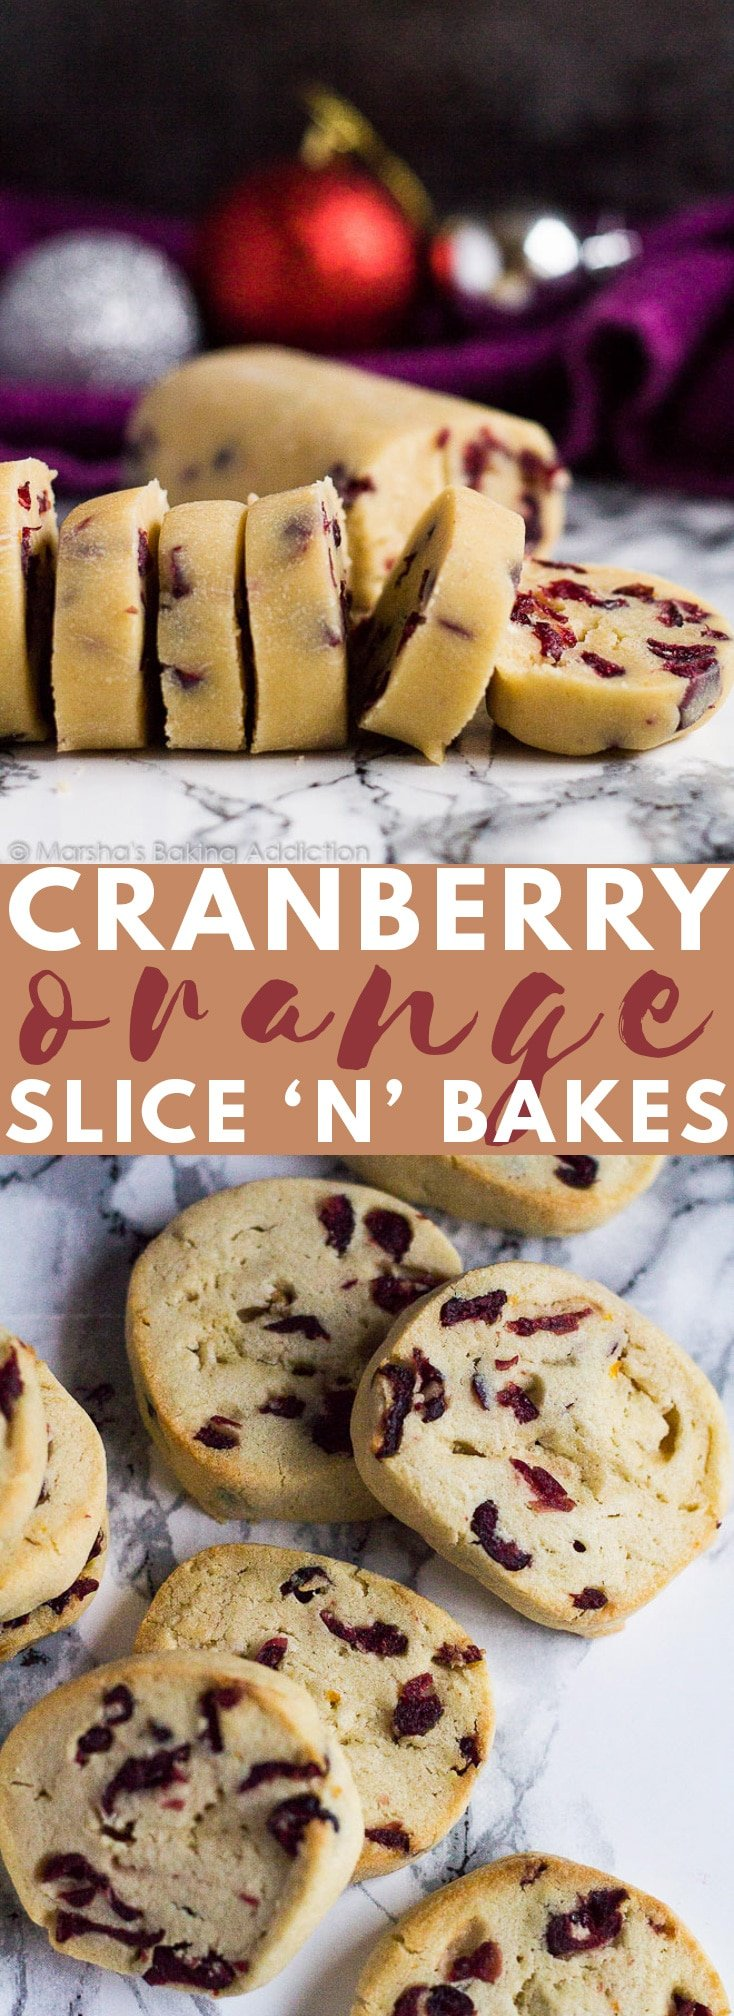 Cranberry Orange Slice 'n' Bake Cookies - Deliciously soft and thick, melt-in-your-mouth orange-infused cookies studded with sweet dried cranberries! #cranberry #orange #cookies #cookierecipes #christmascookies